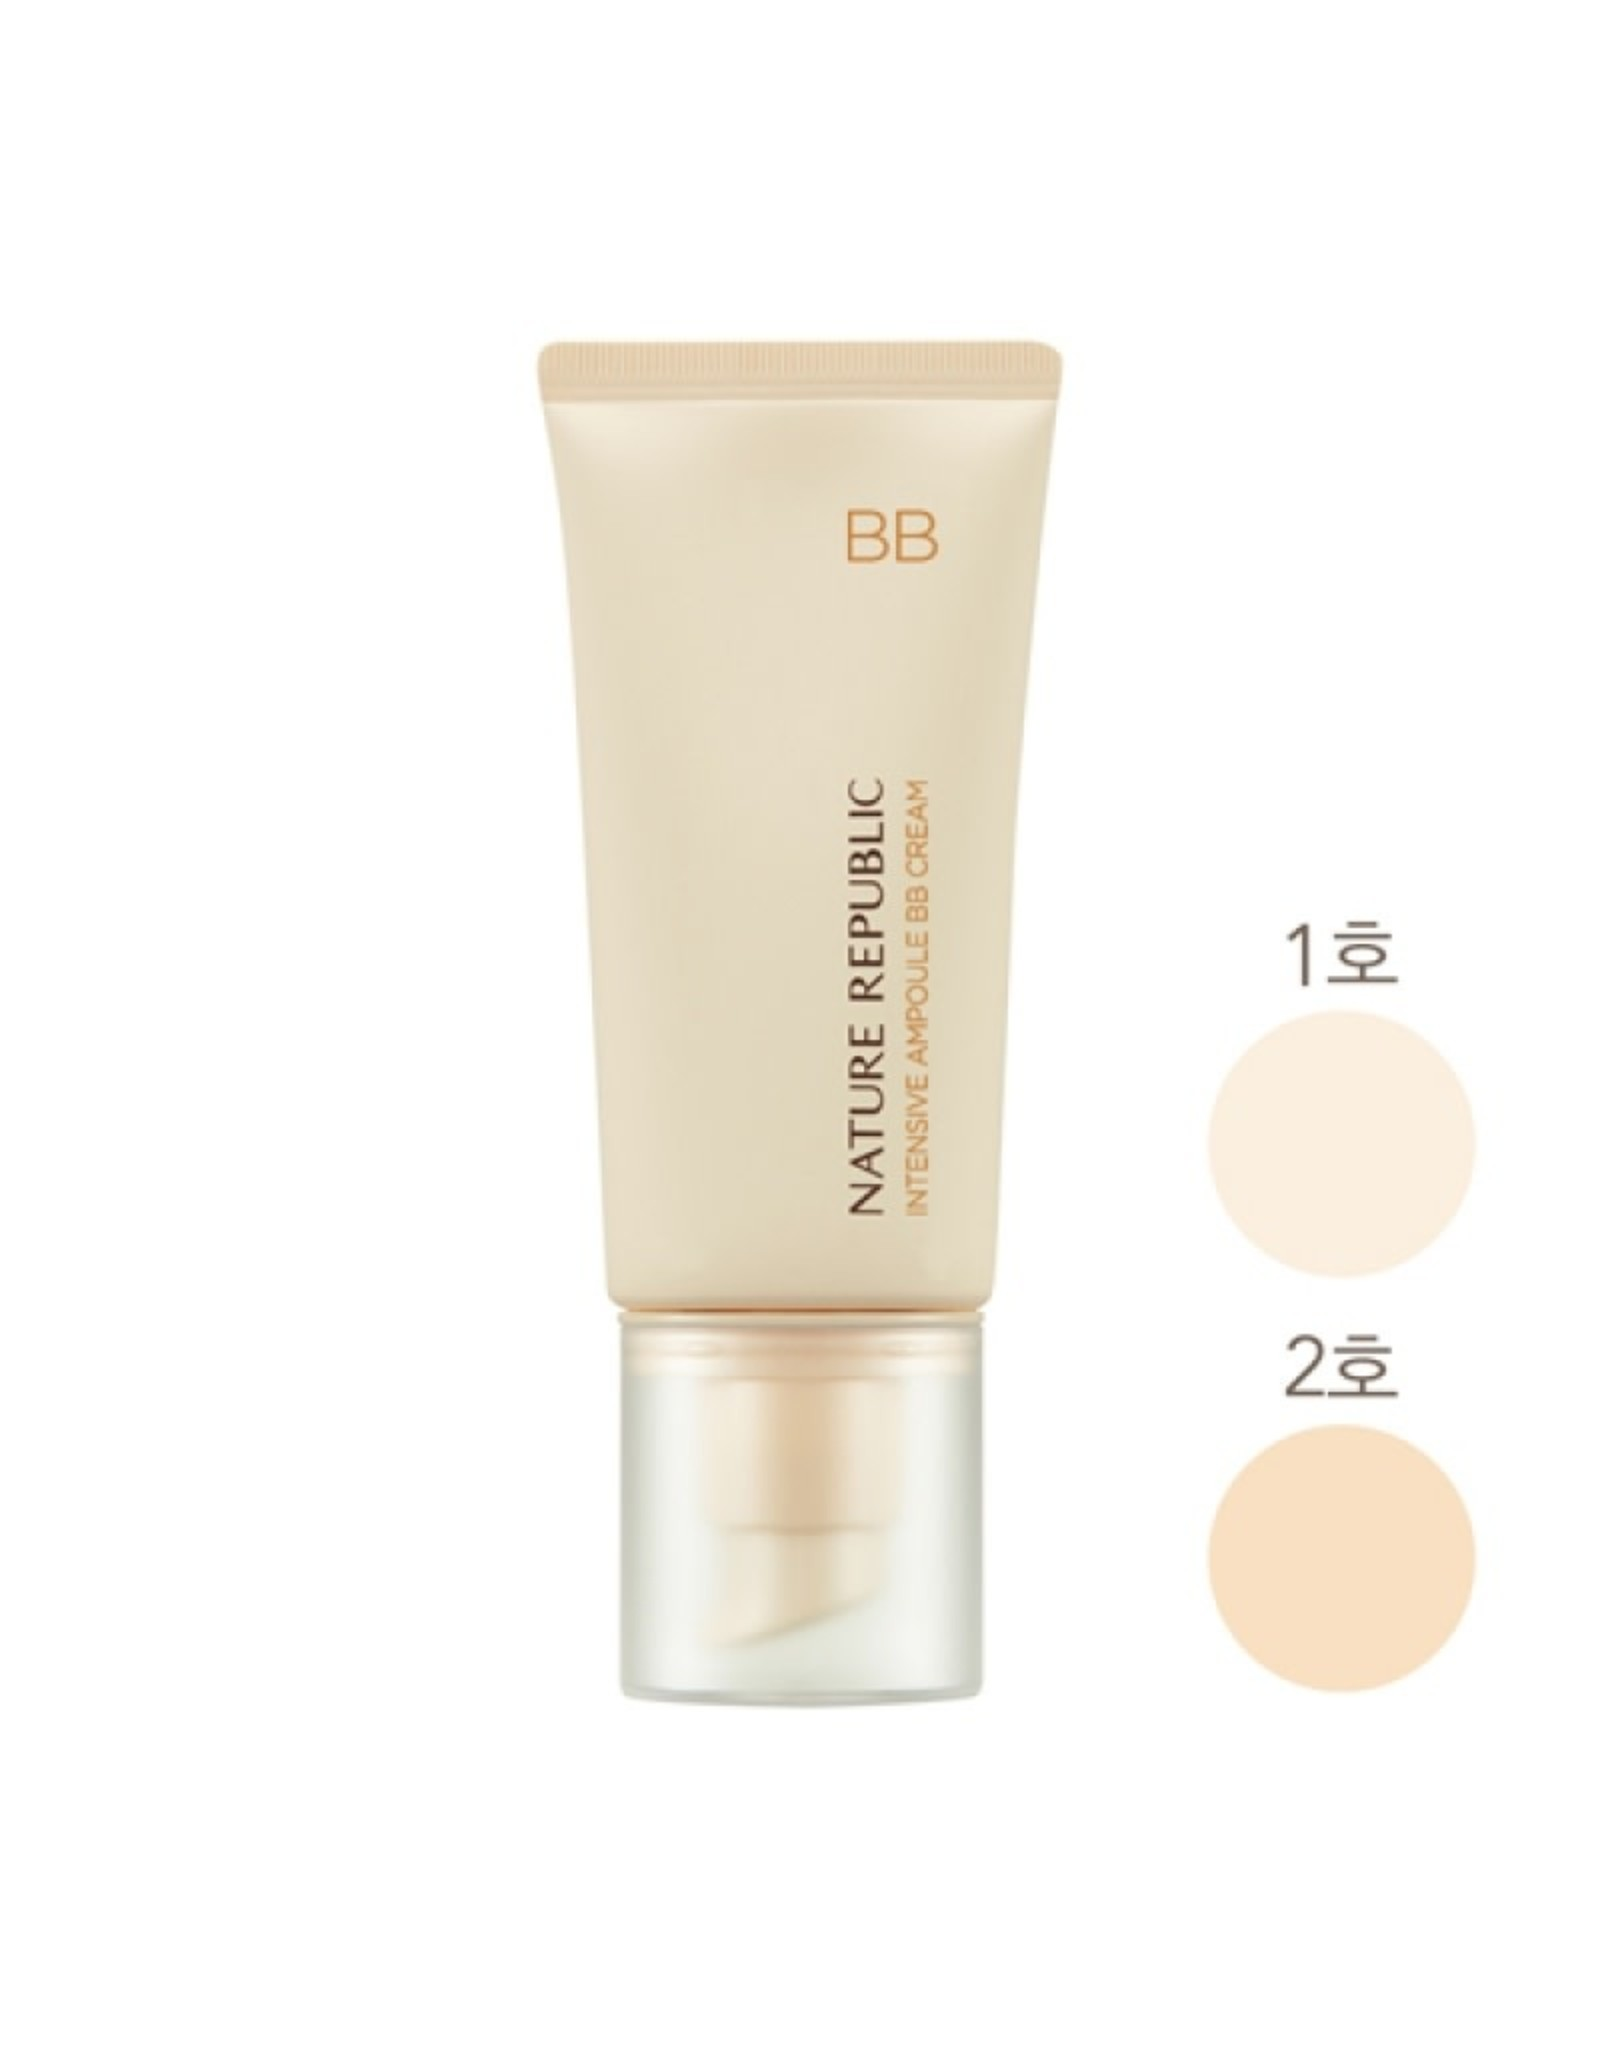 Provence Intensive Ampoule Bb Cream 01 Light Beige Spf30 Pa++